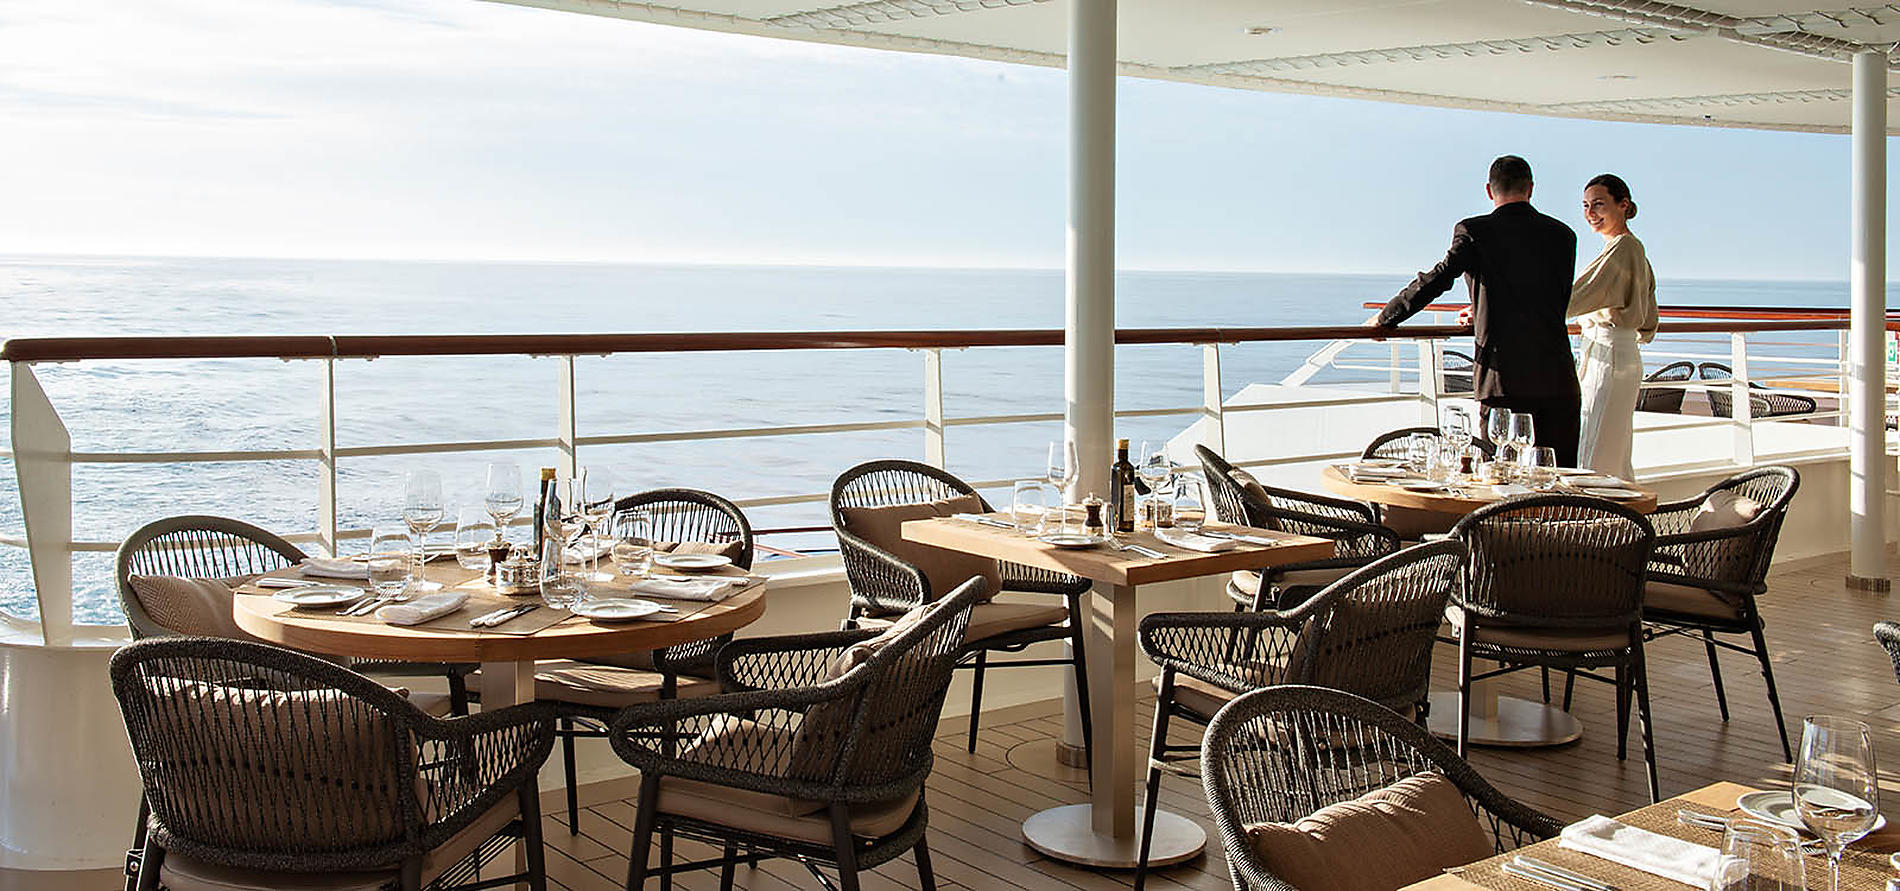 Le Jacques Cartier Open Deck